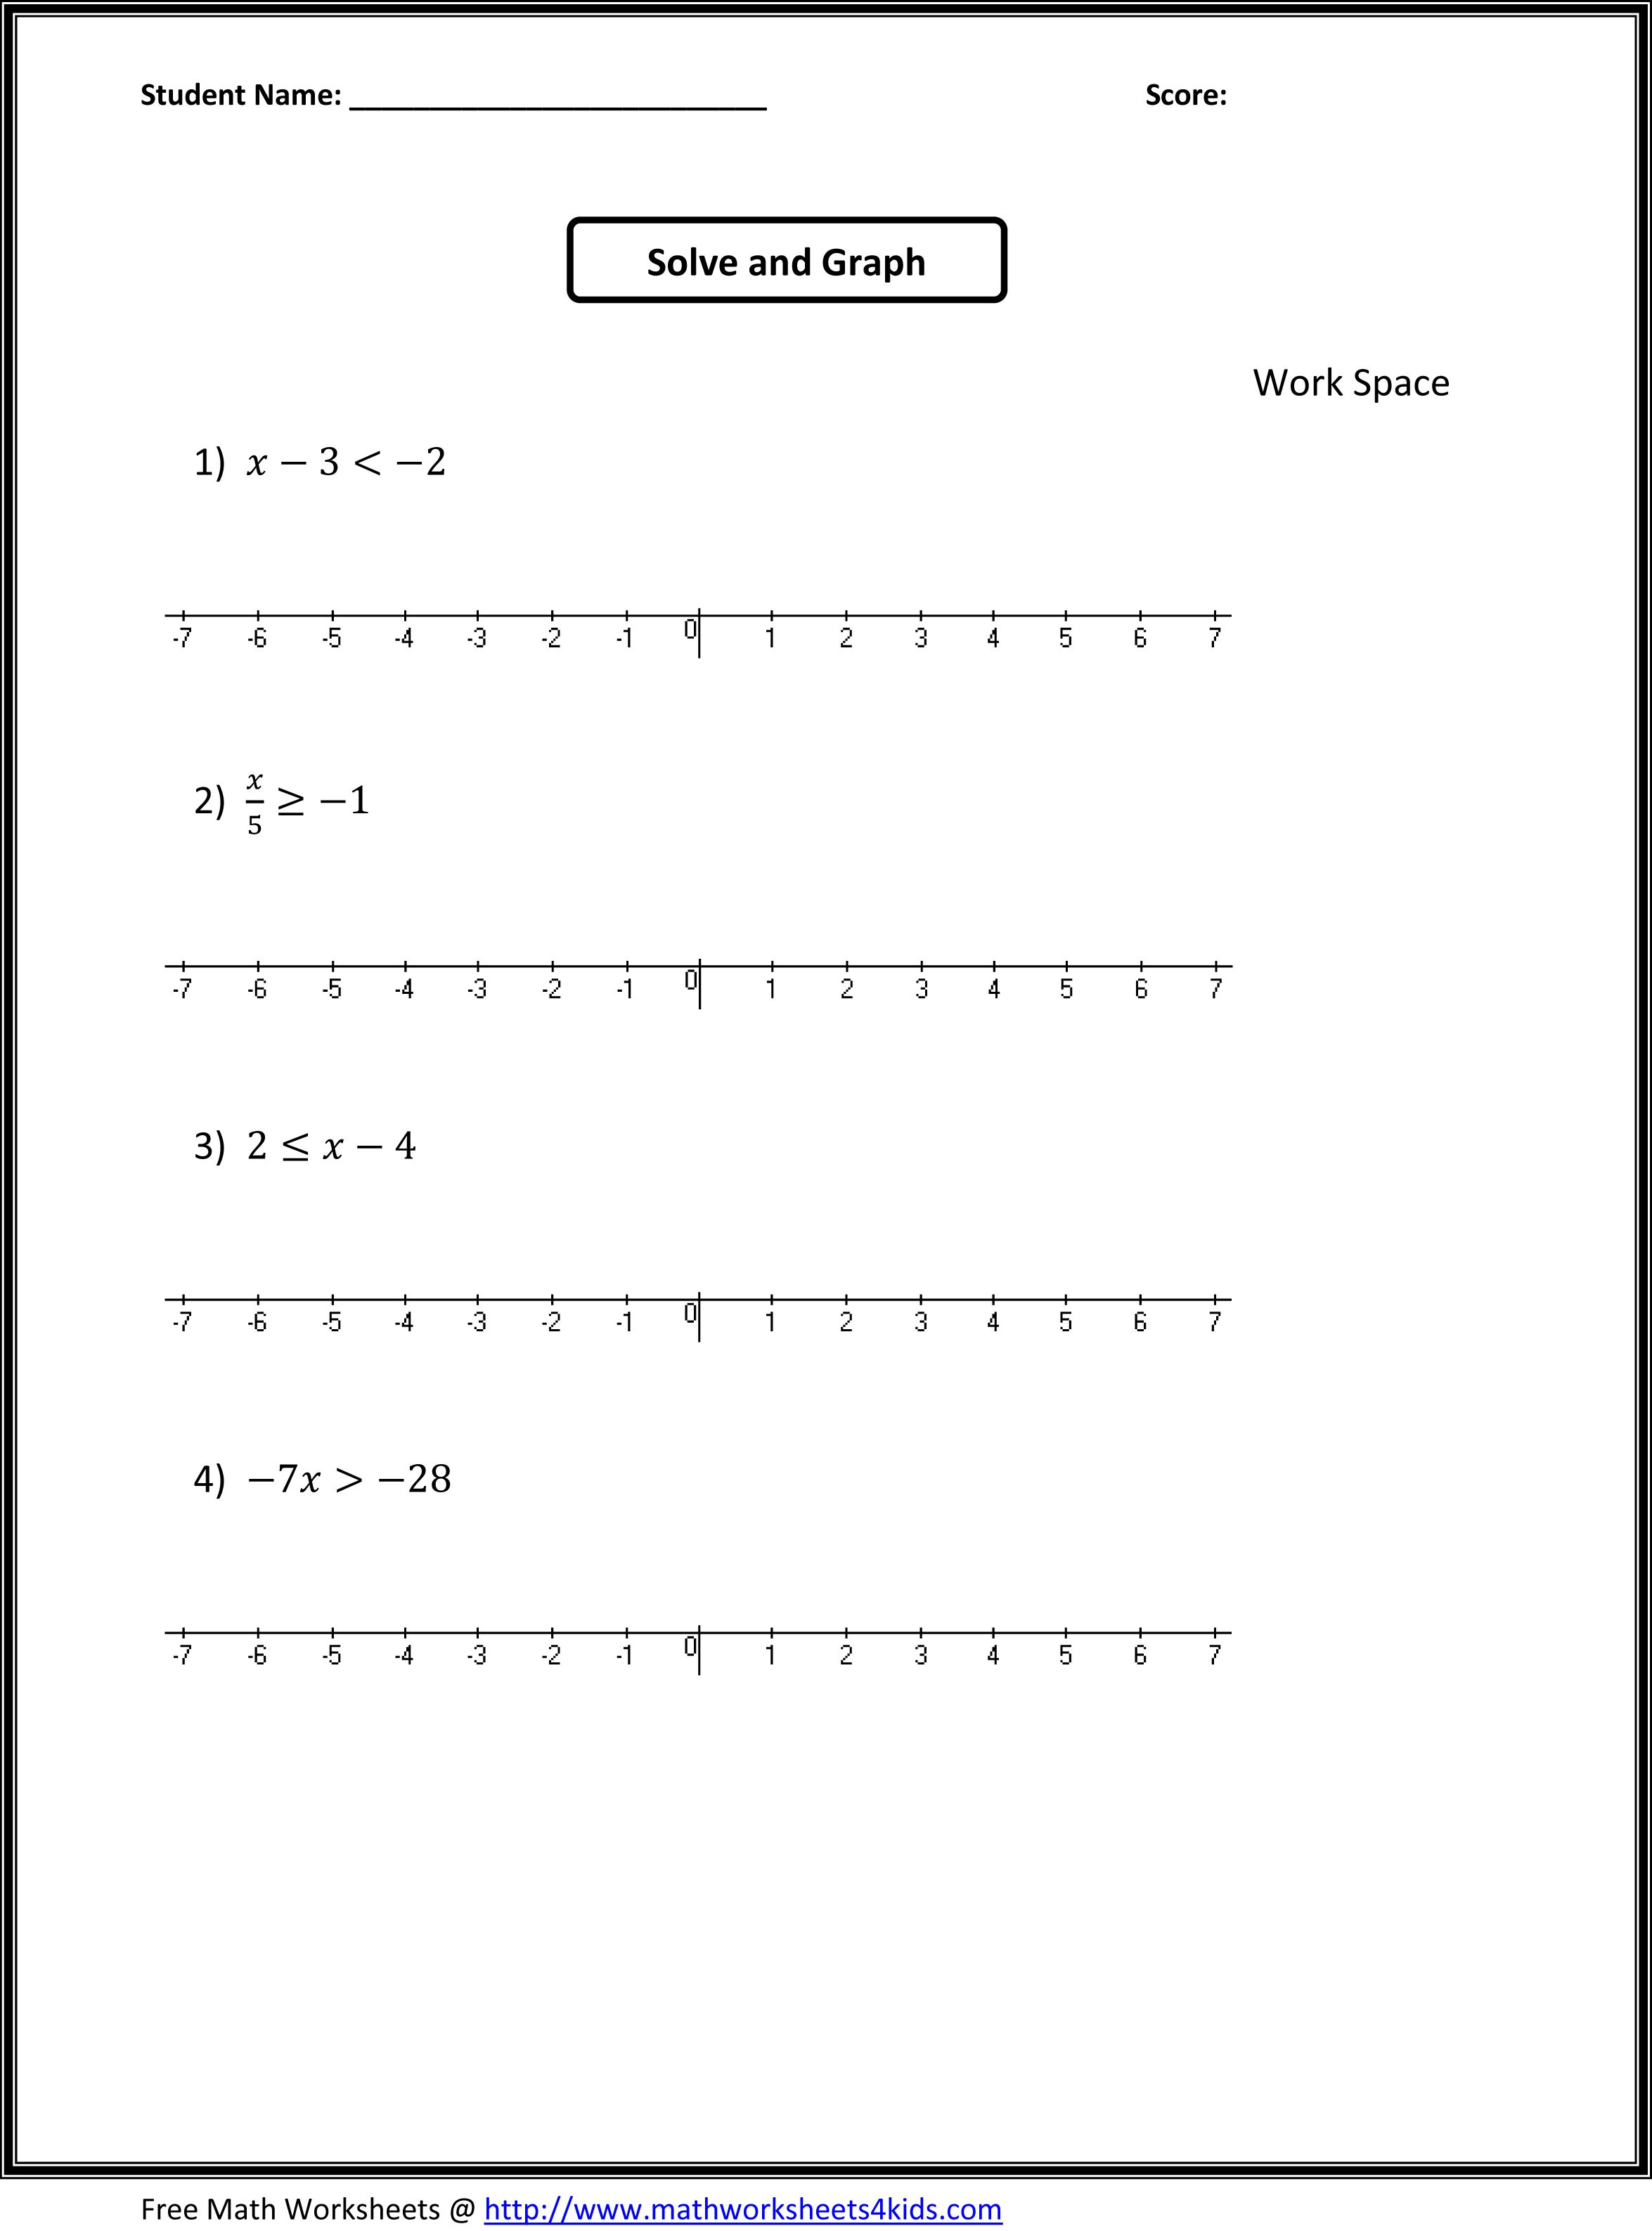 Math Decimals Worksheets Math Riddles 4th 5th 6th 7th Grade – Maths Worksheets for Grade 7